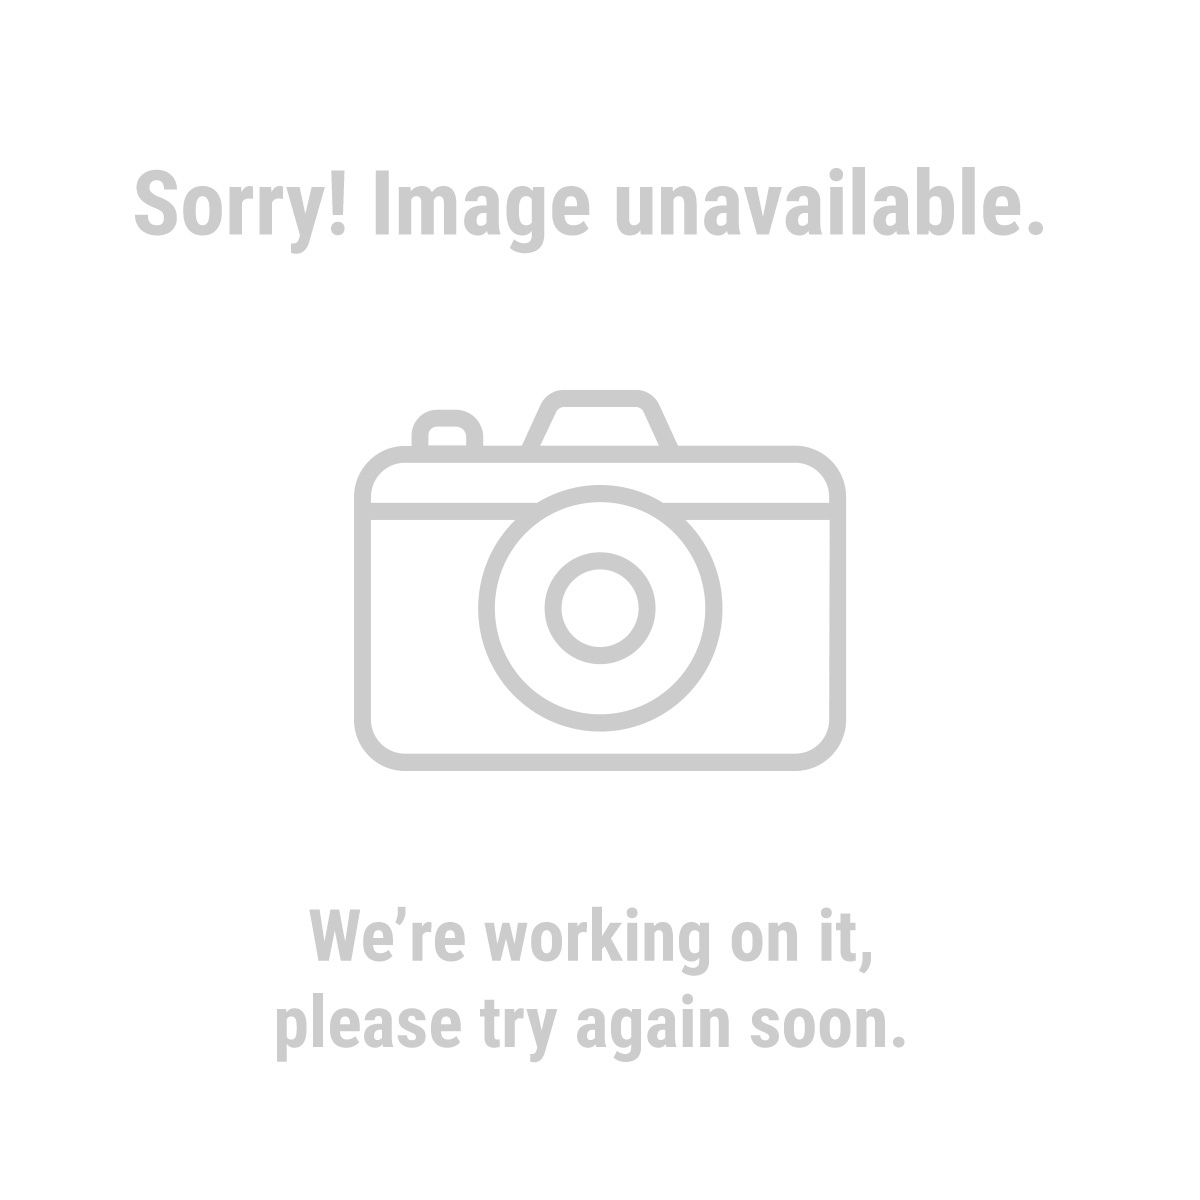 Reflective Safety Vest - X-Large